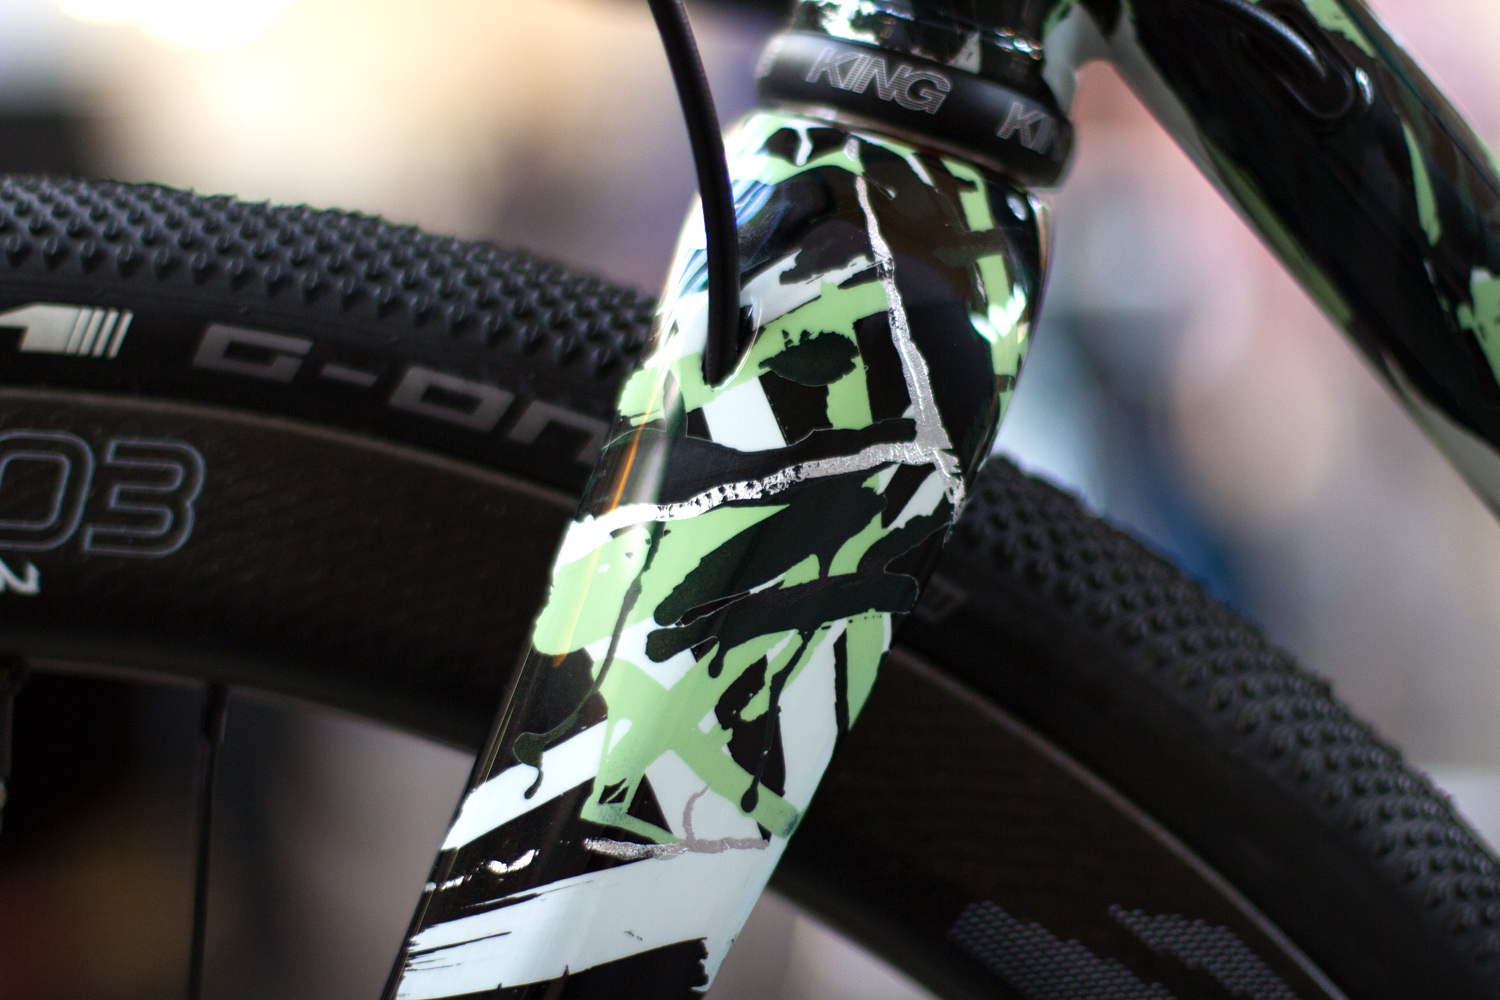 quirk_cycles_sram_bespoked_build_05.jpg